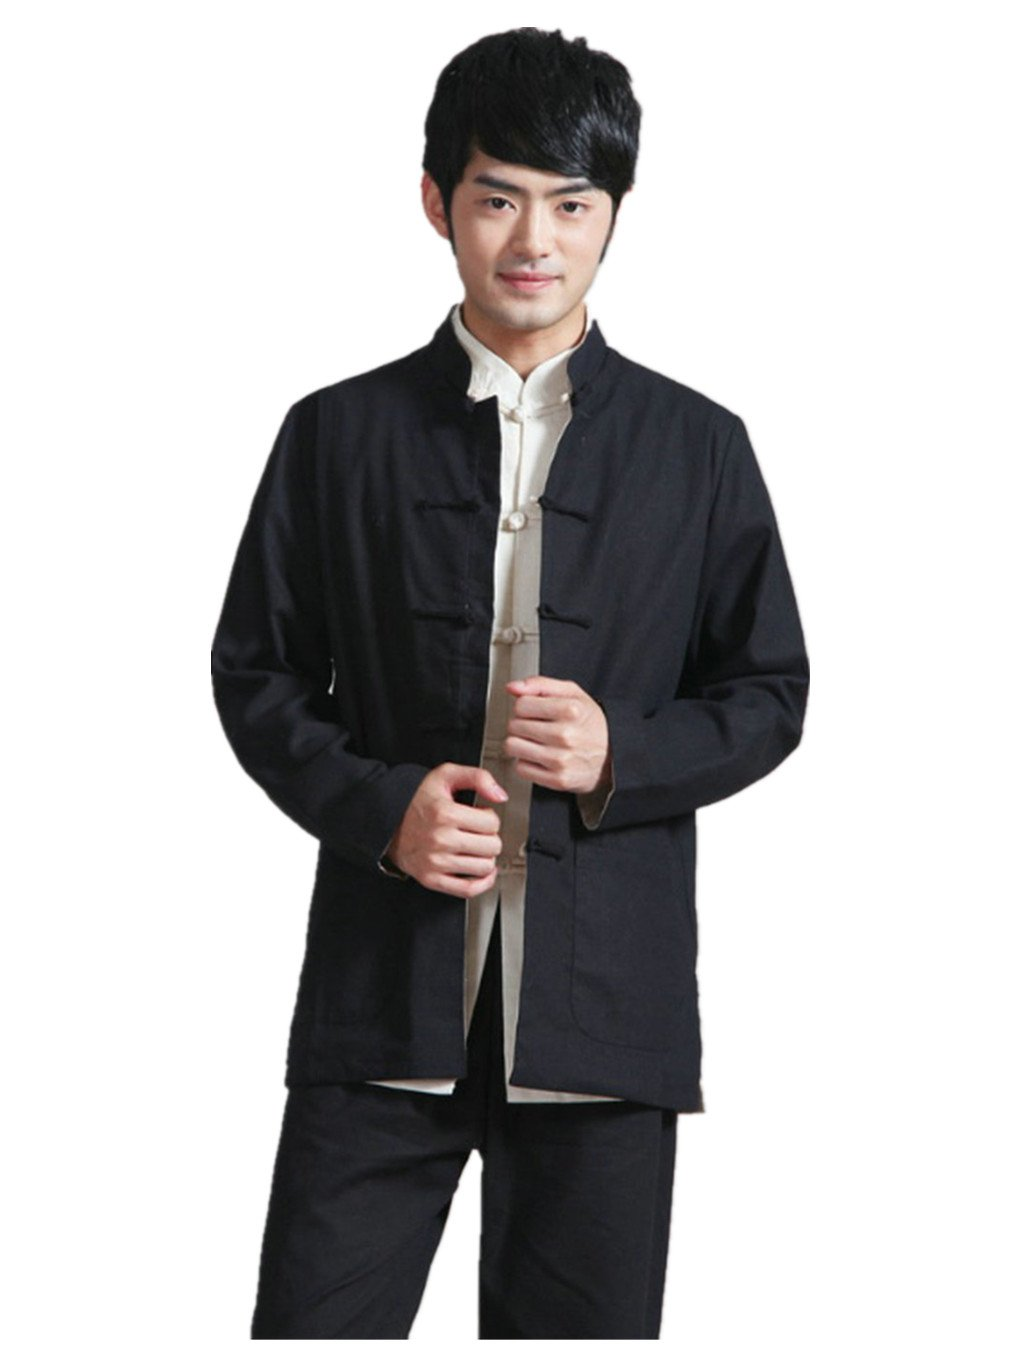 Cotton-flax Tang Suits Double-sided Wear Retro Jackets mens shirts Business Jackets Full Dress